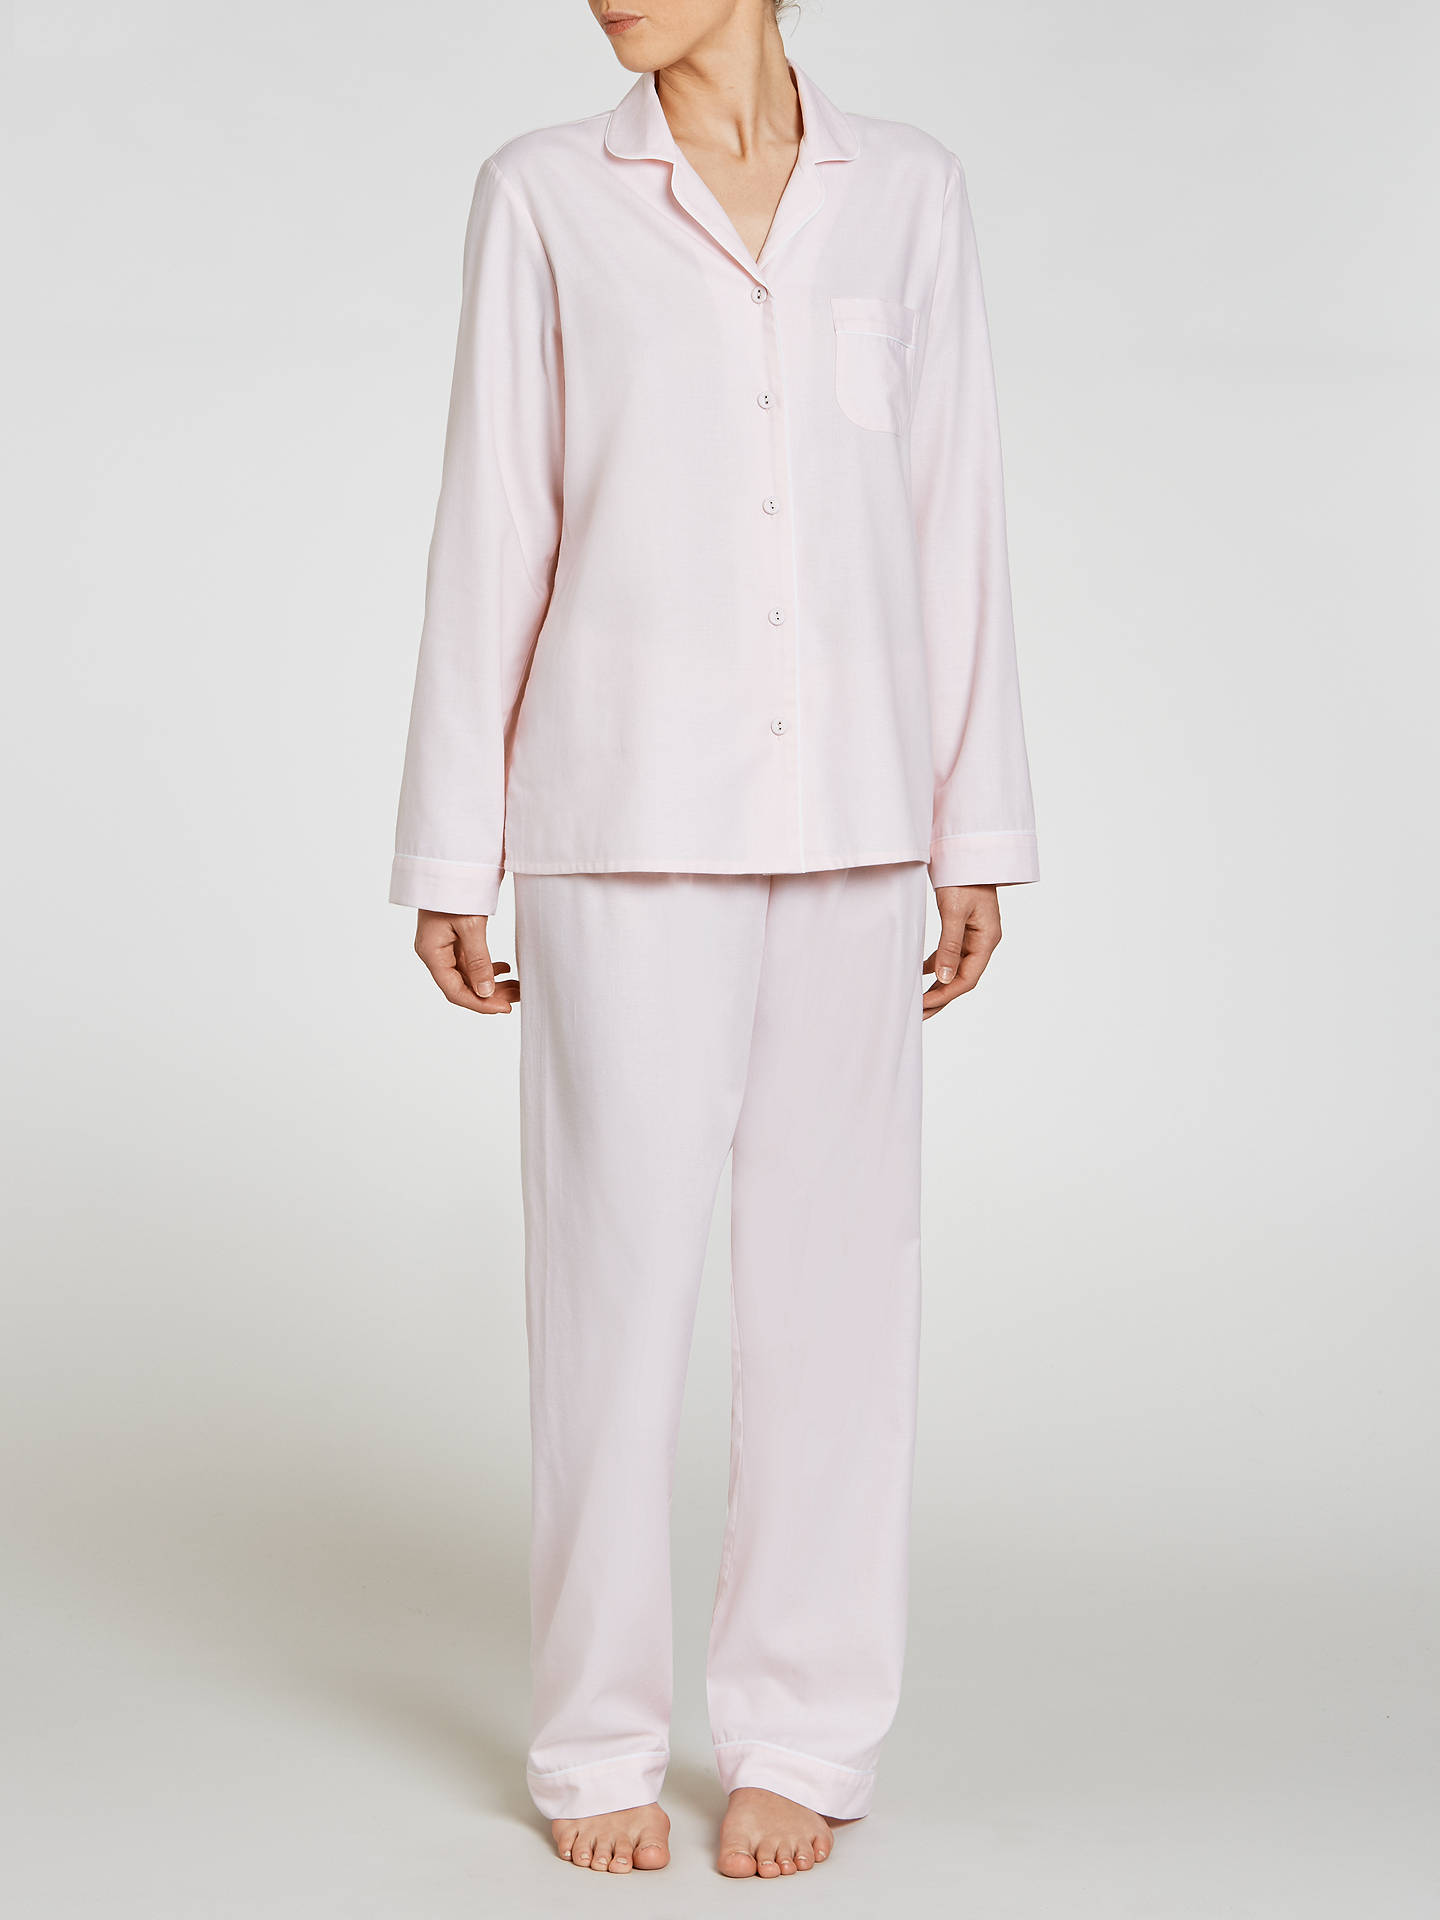 Buy John Lewis Chambray Pyjama Set, Light Pink, 12 Online at johnlewis.com